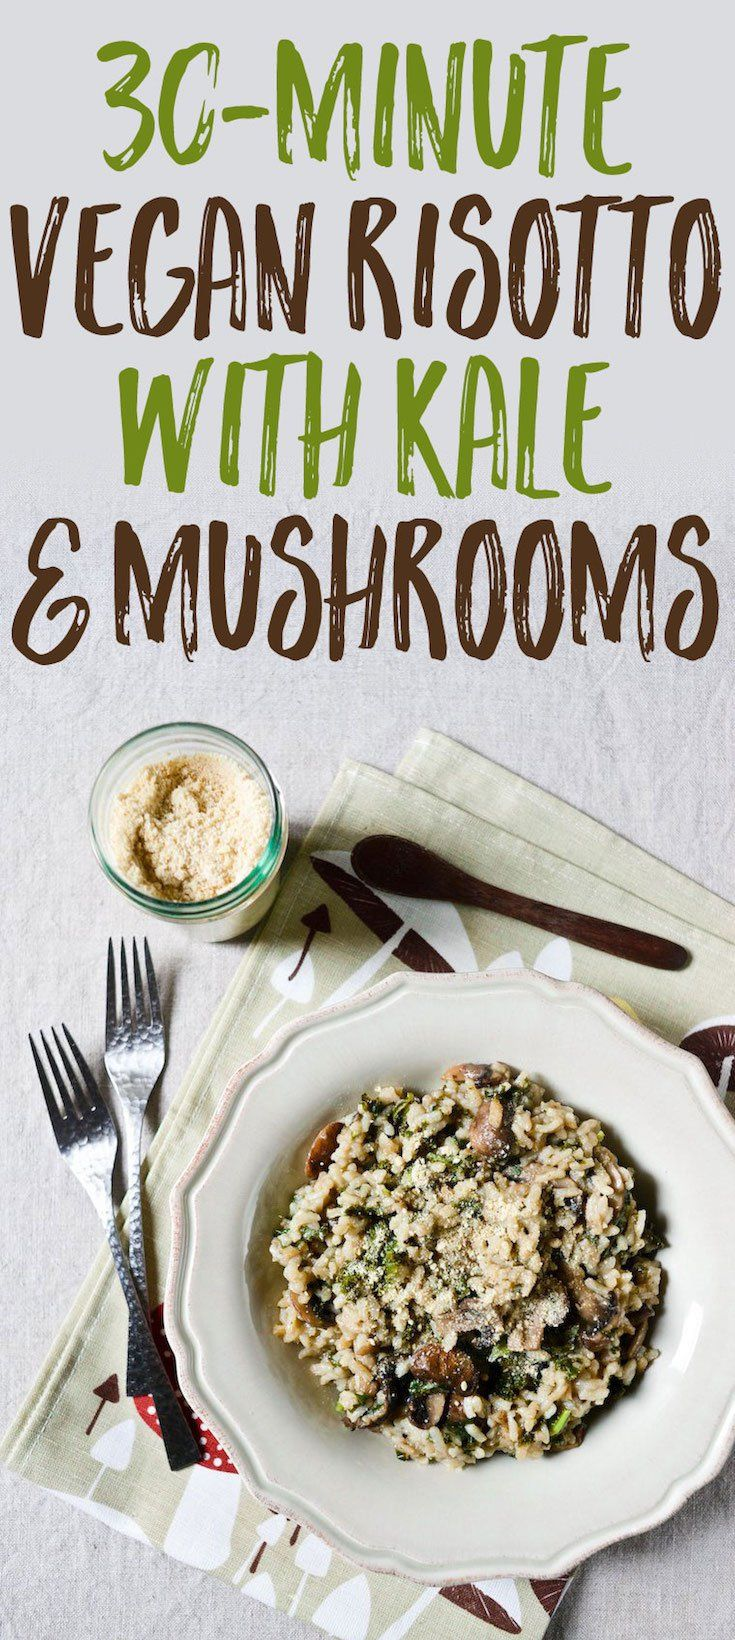 A super easy, fail-safe recipe for vegan risotto with kale and mushrooms, made in 20 minutes in the pressure cooker! Includes a formula for vegan parmesan.